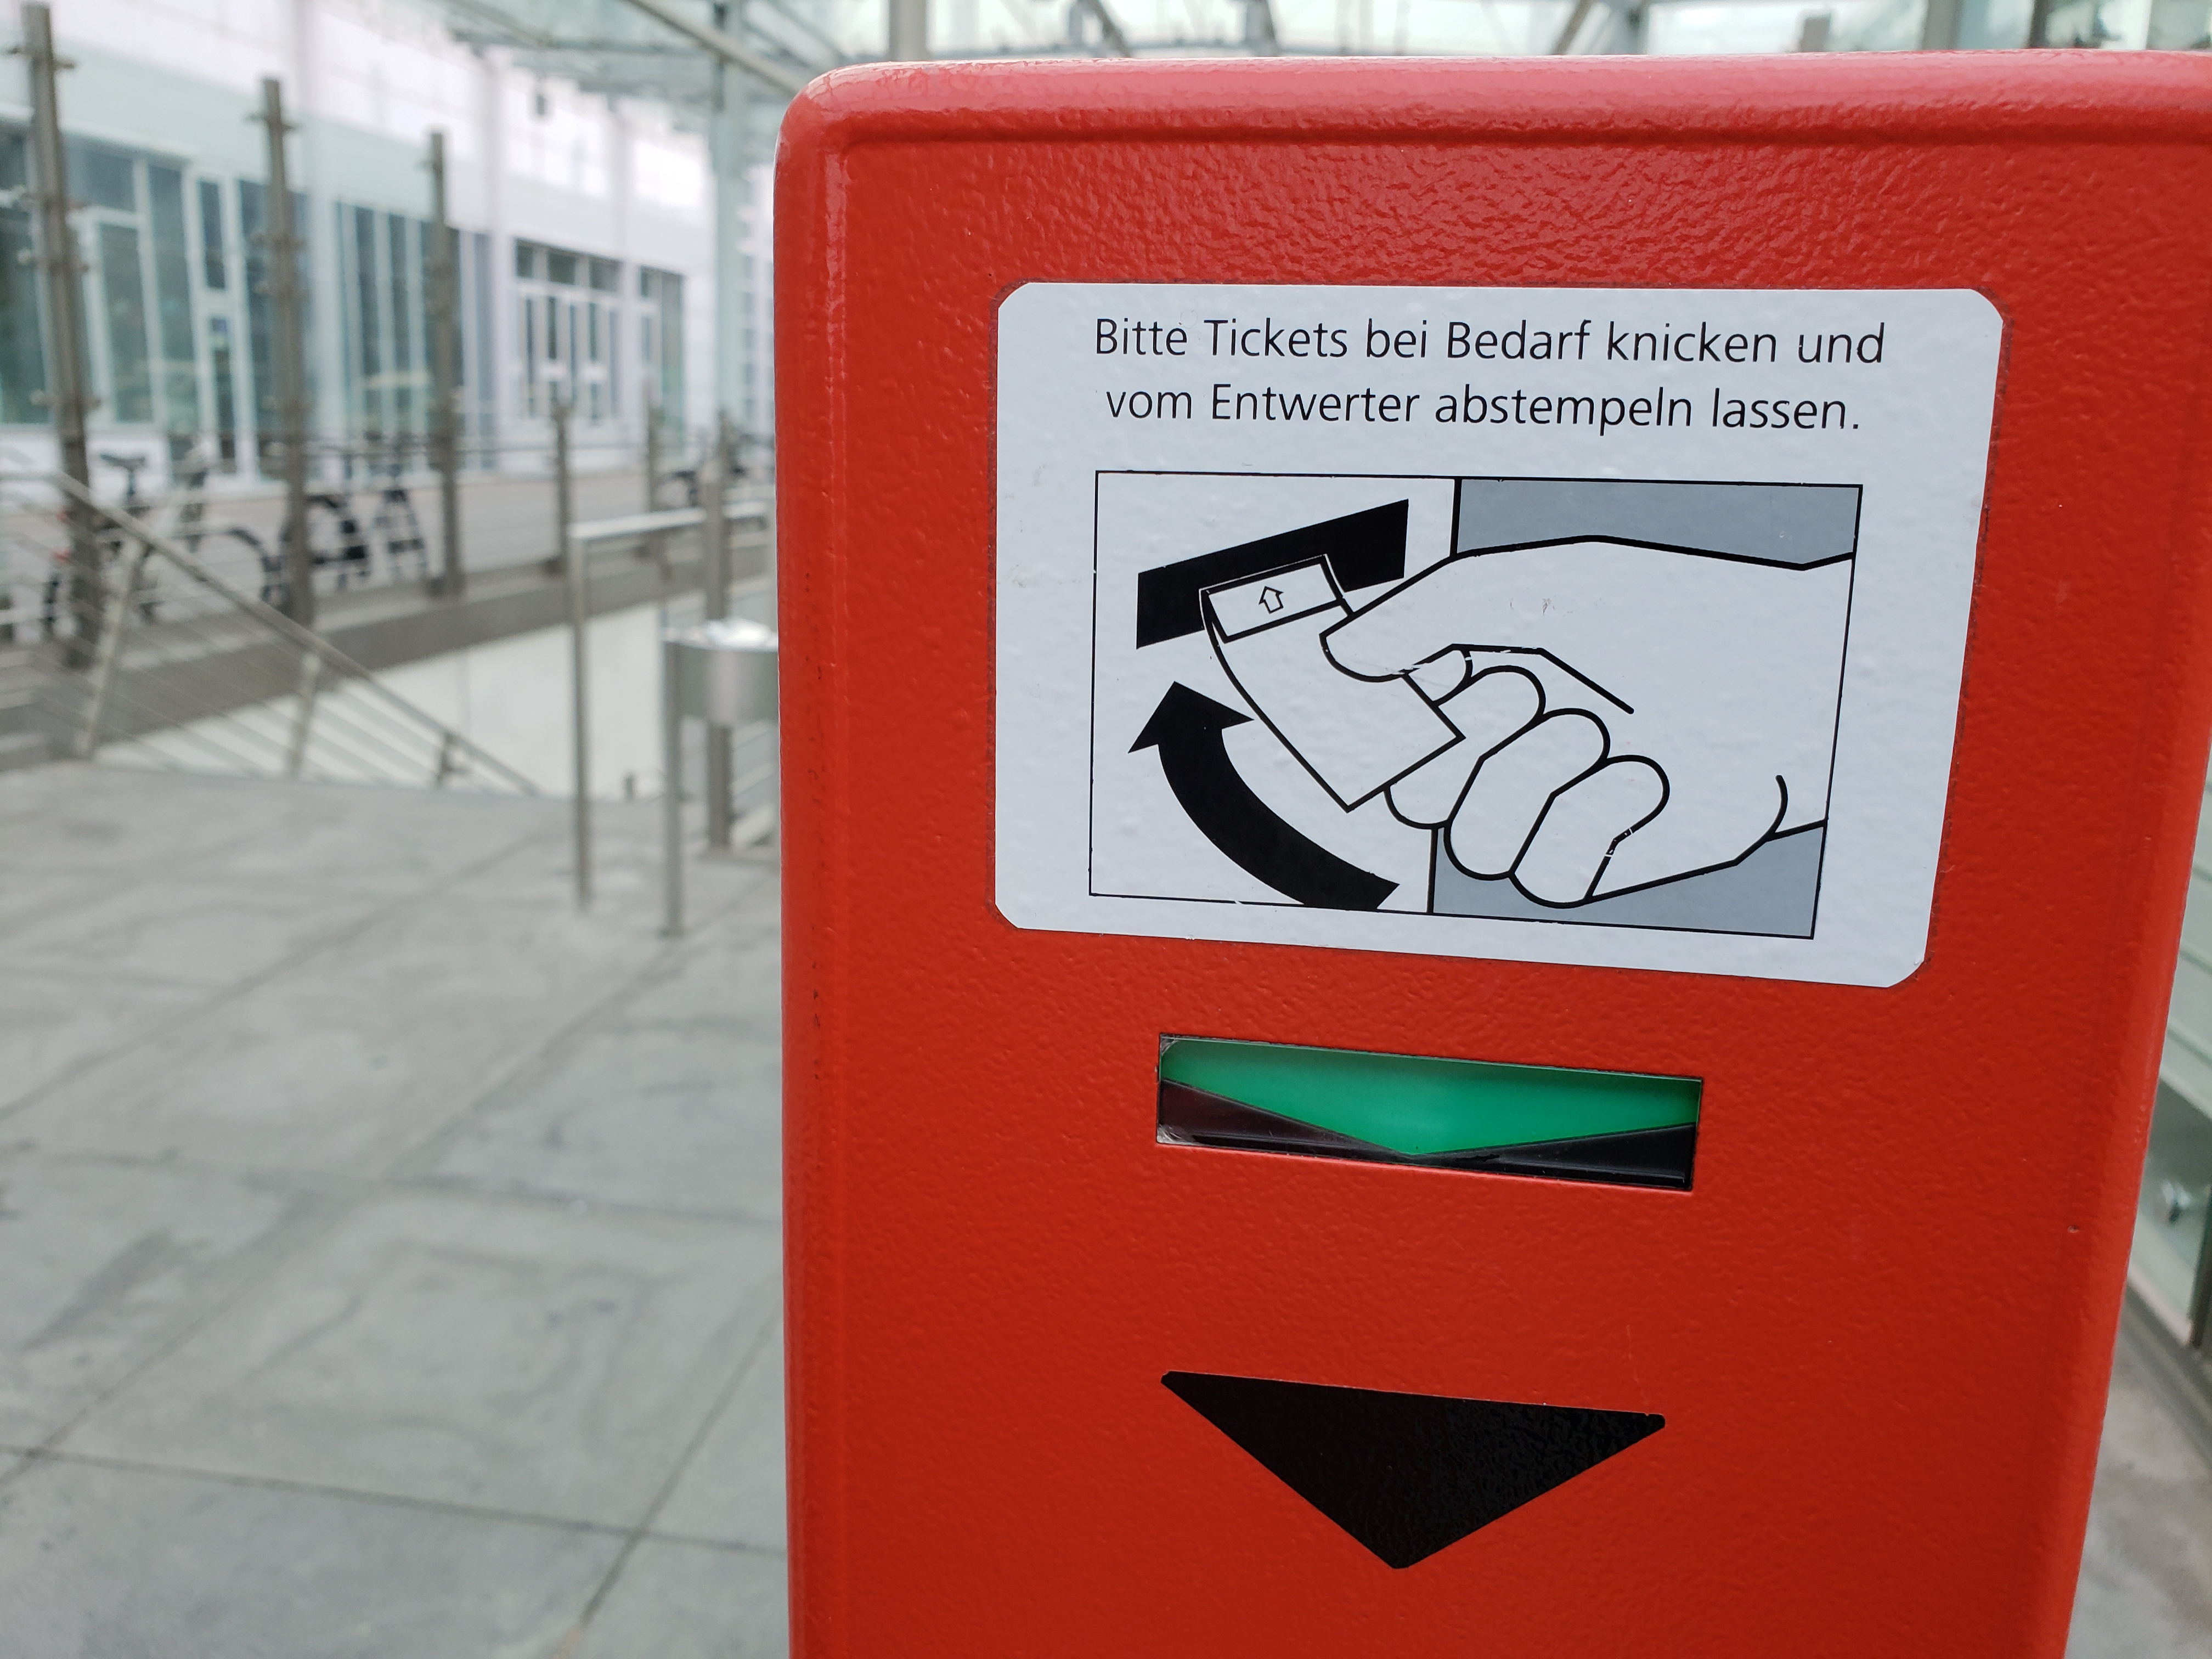 A small stand with German instructions for (maybe) how to flatten a wrinkled public transit ticket.